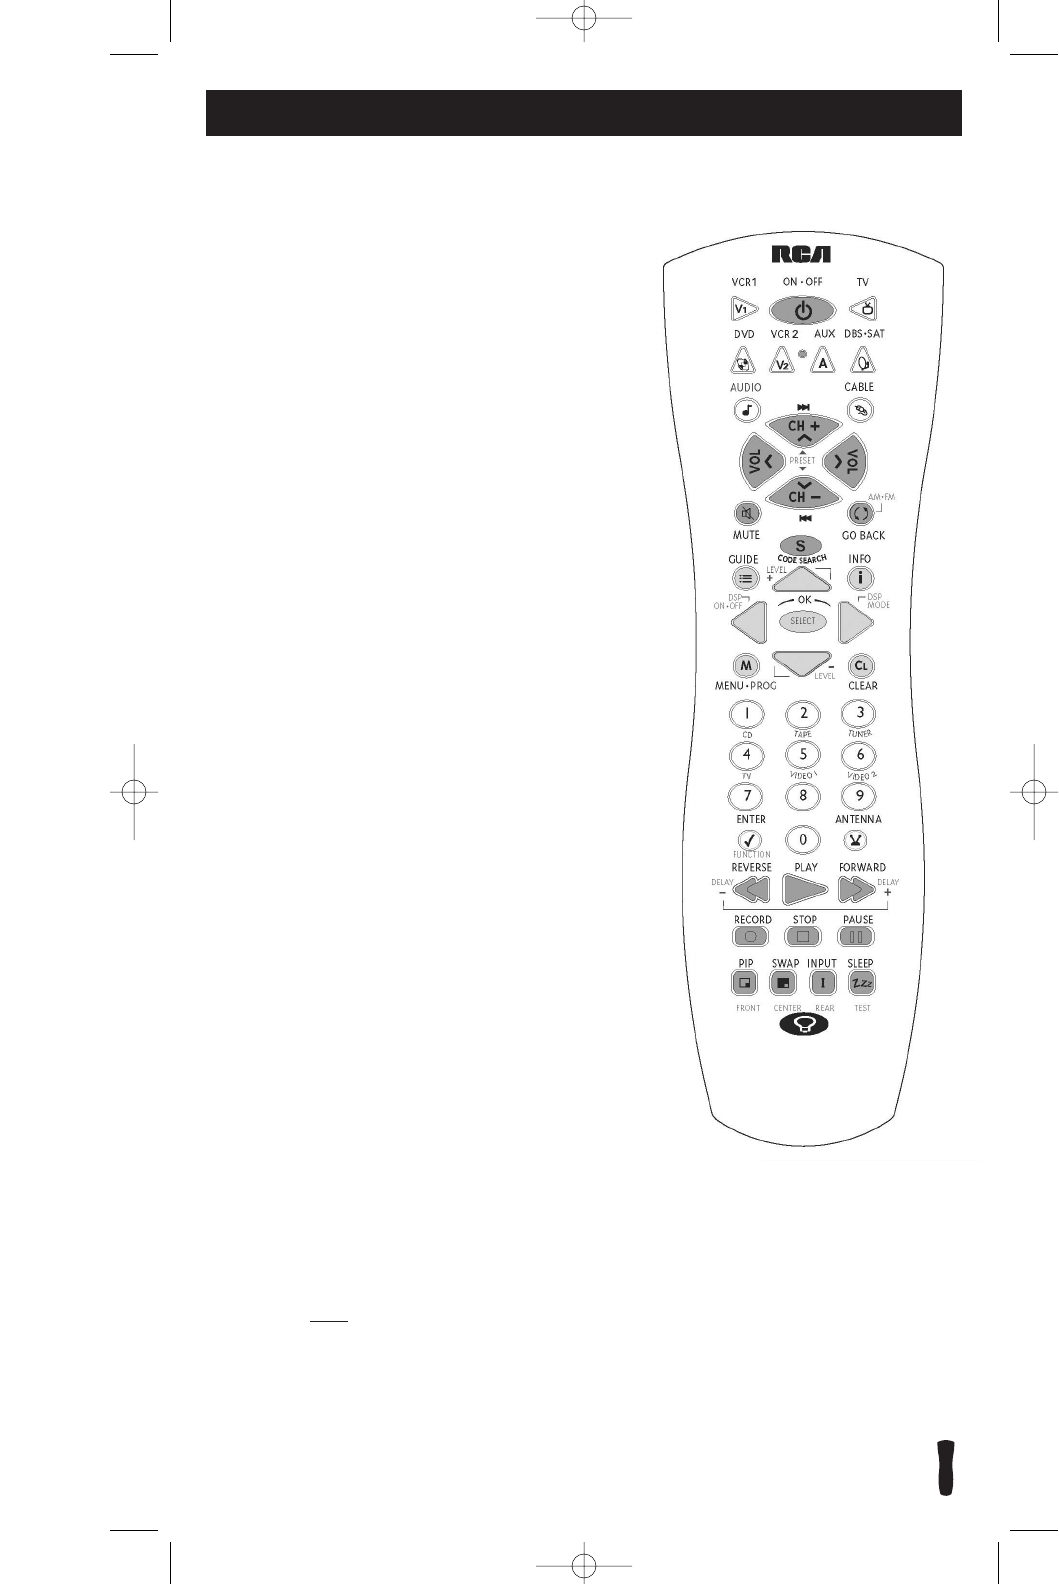 Page 4 of RCA Universal Remote RCU800 User Guide